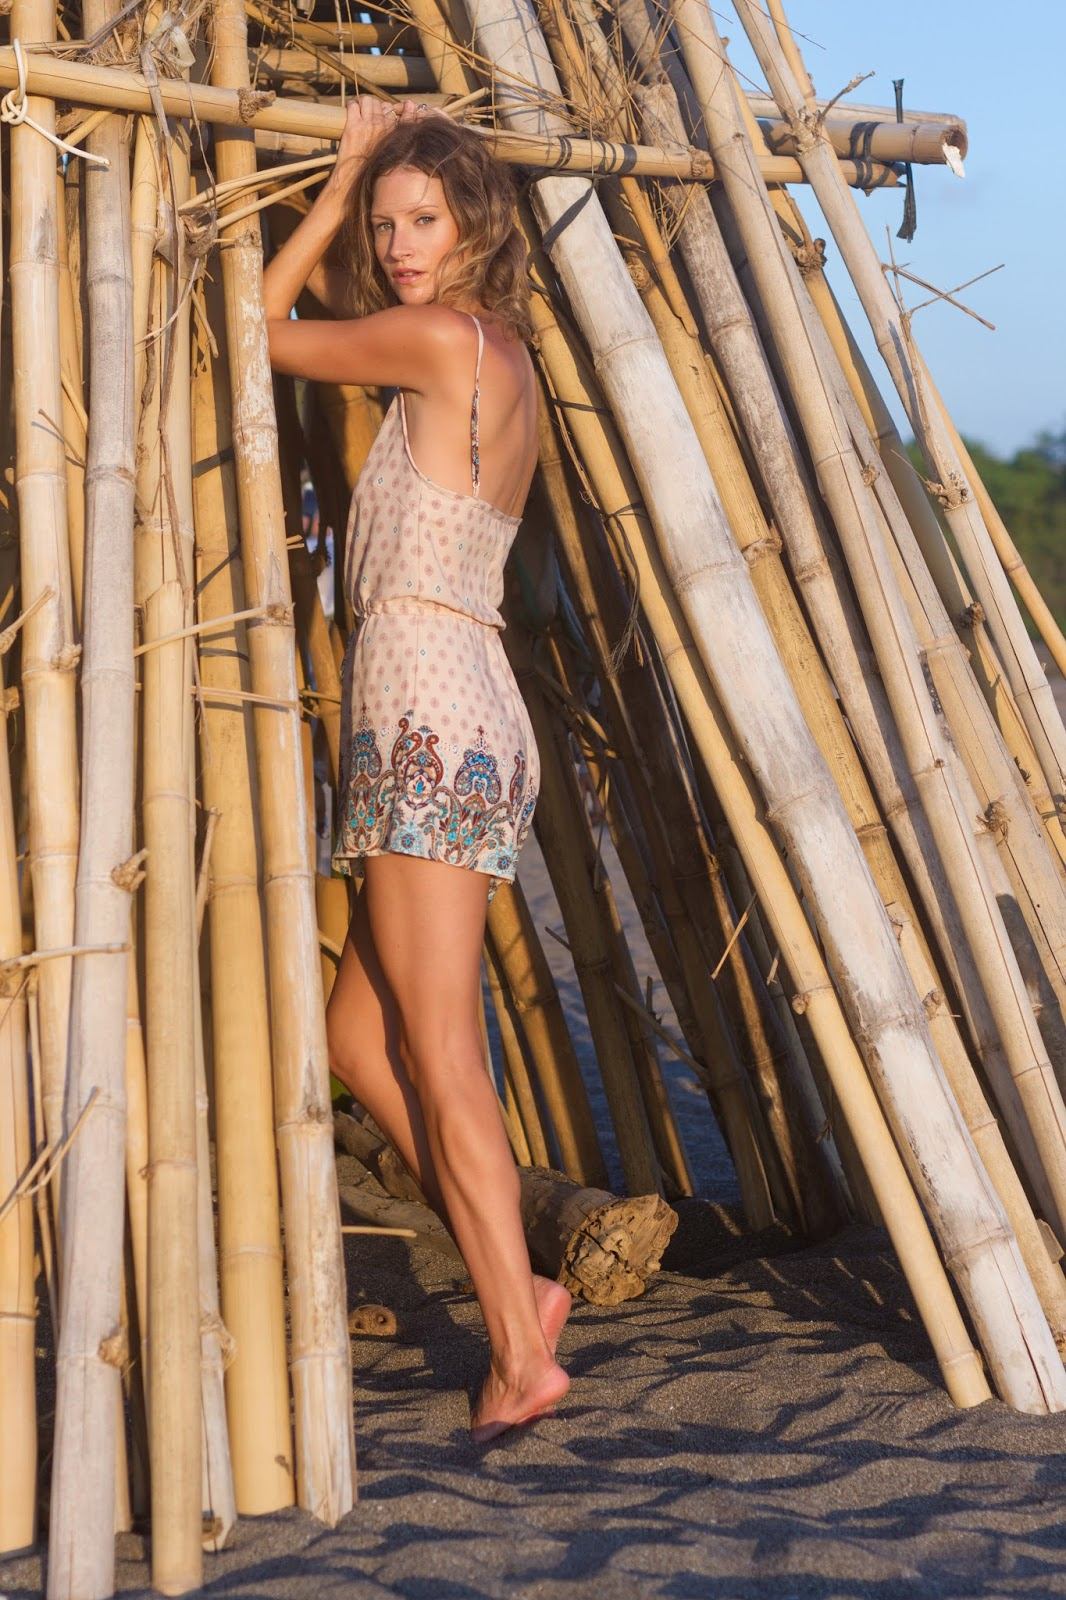 fashion blogger and designer, Alison Hutchinson, is wearing a KAYVALYA Ruko Romper in Bali, Indonesia